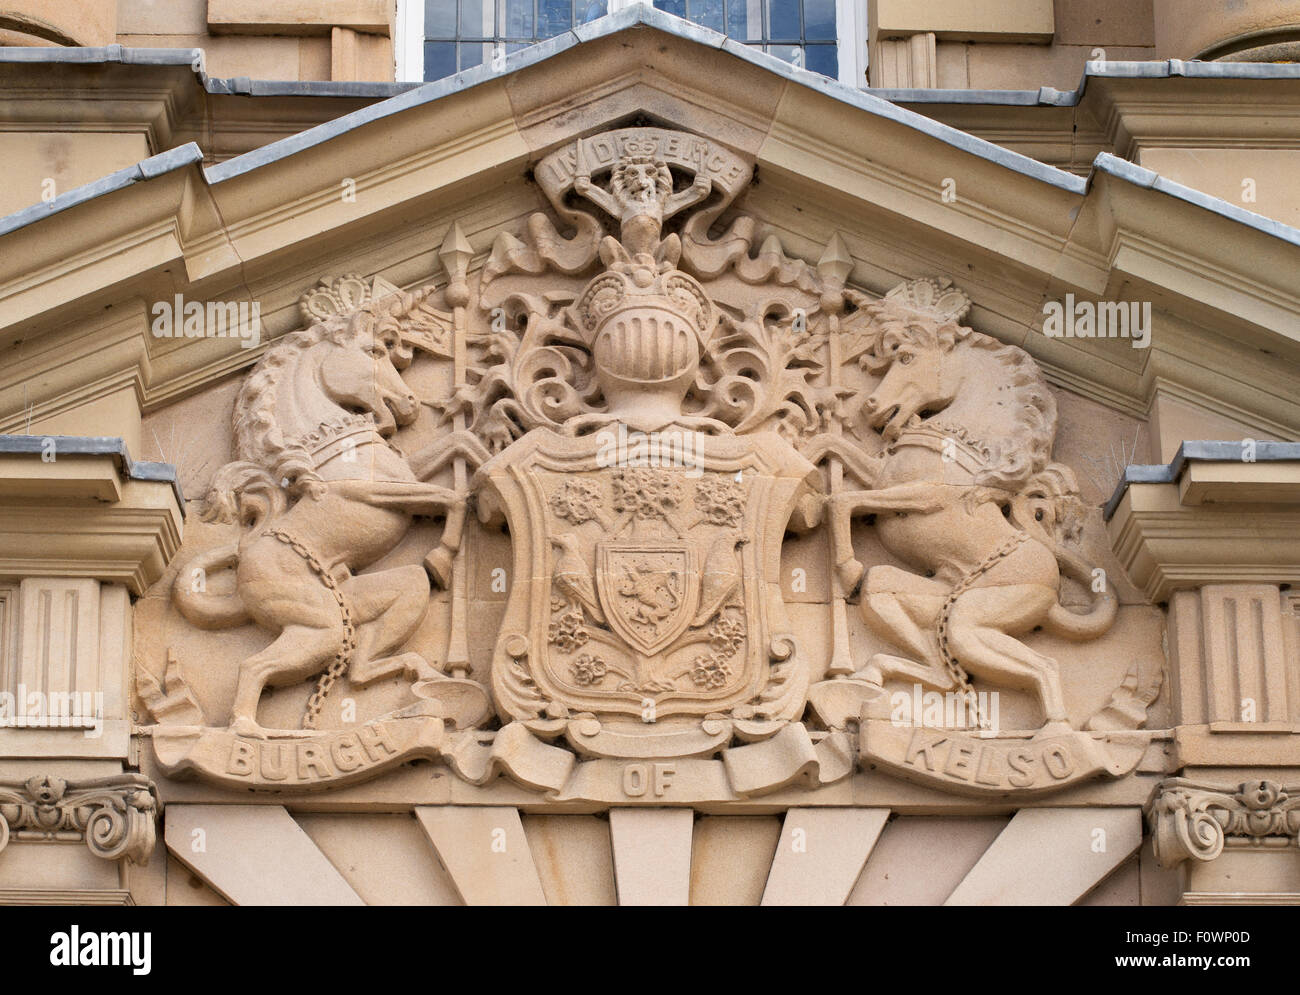 Burgh of Kelso coat of arms above door of the Town Hall, Scottish Borders, Scotland, UK - Stock Image